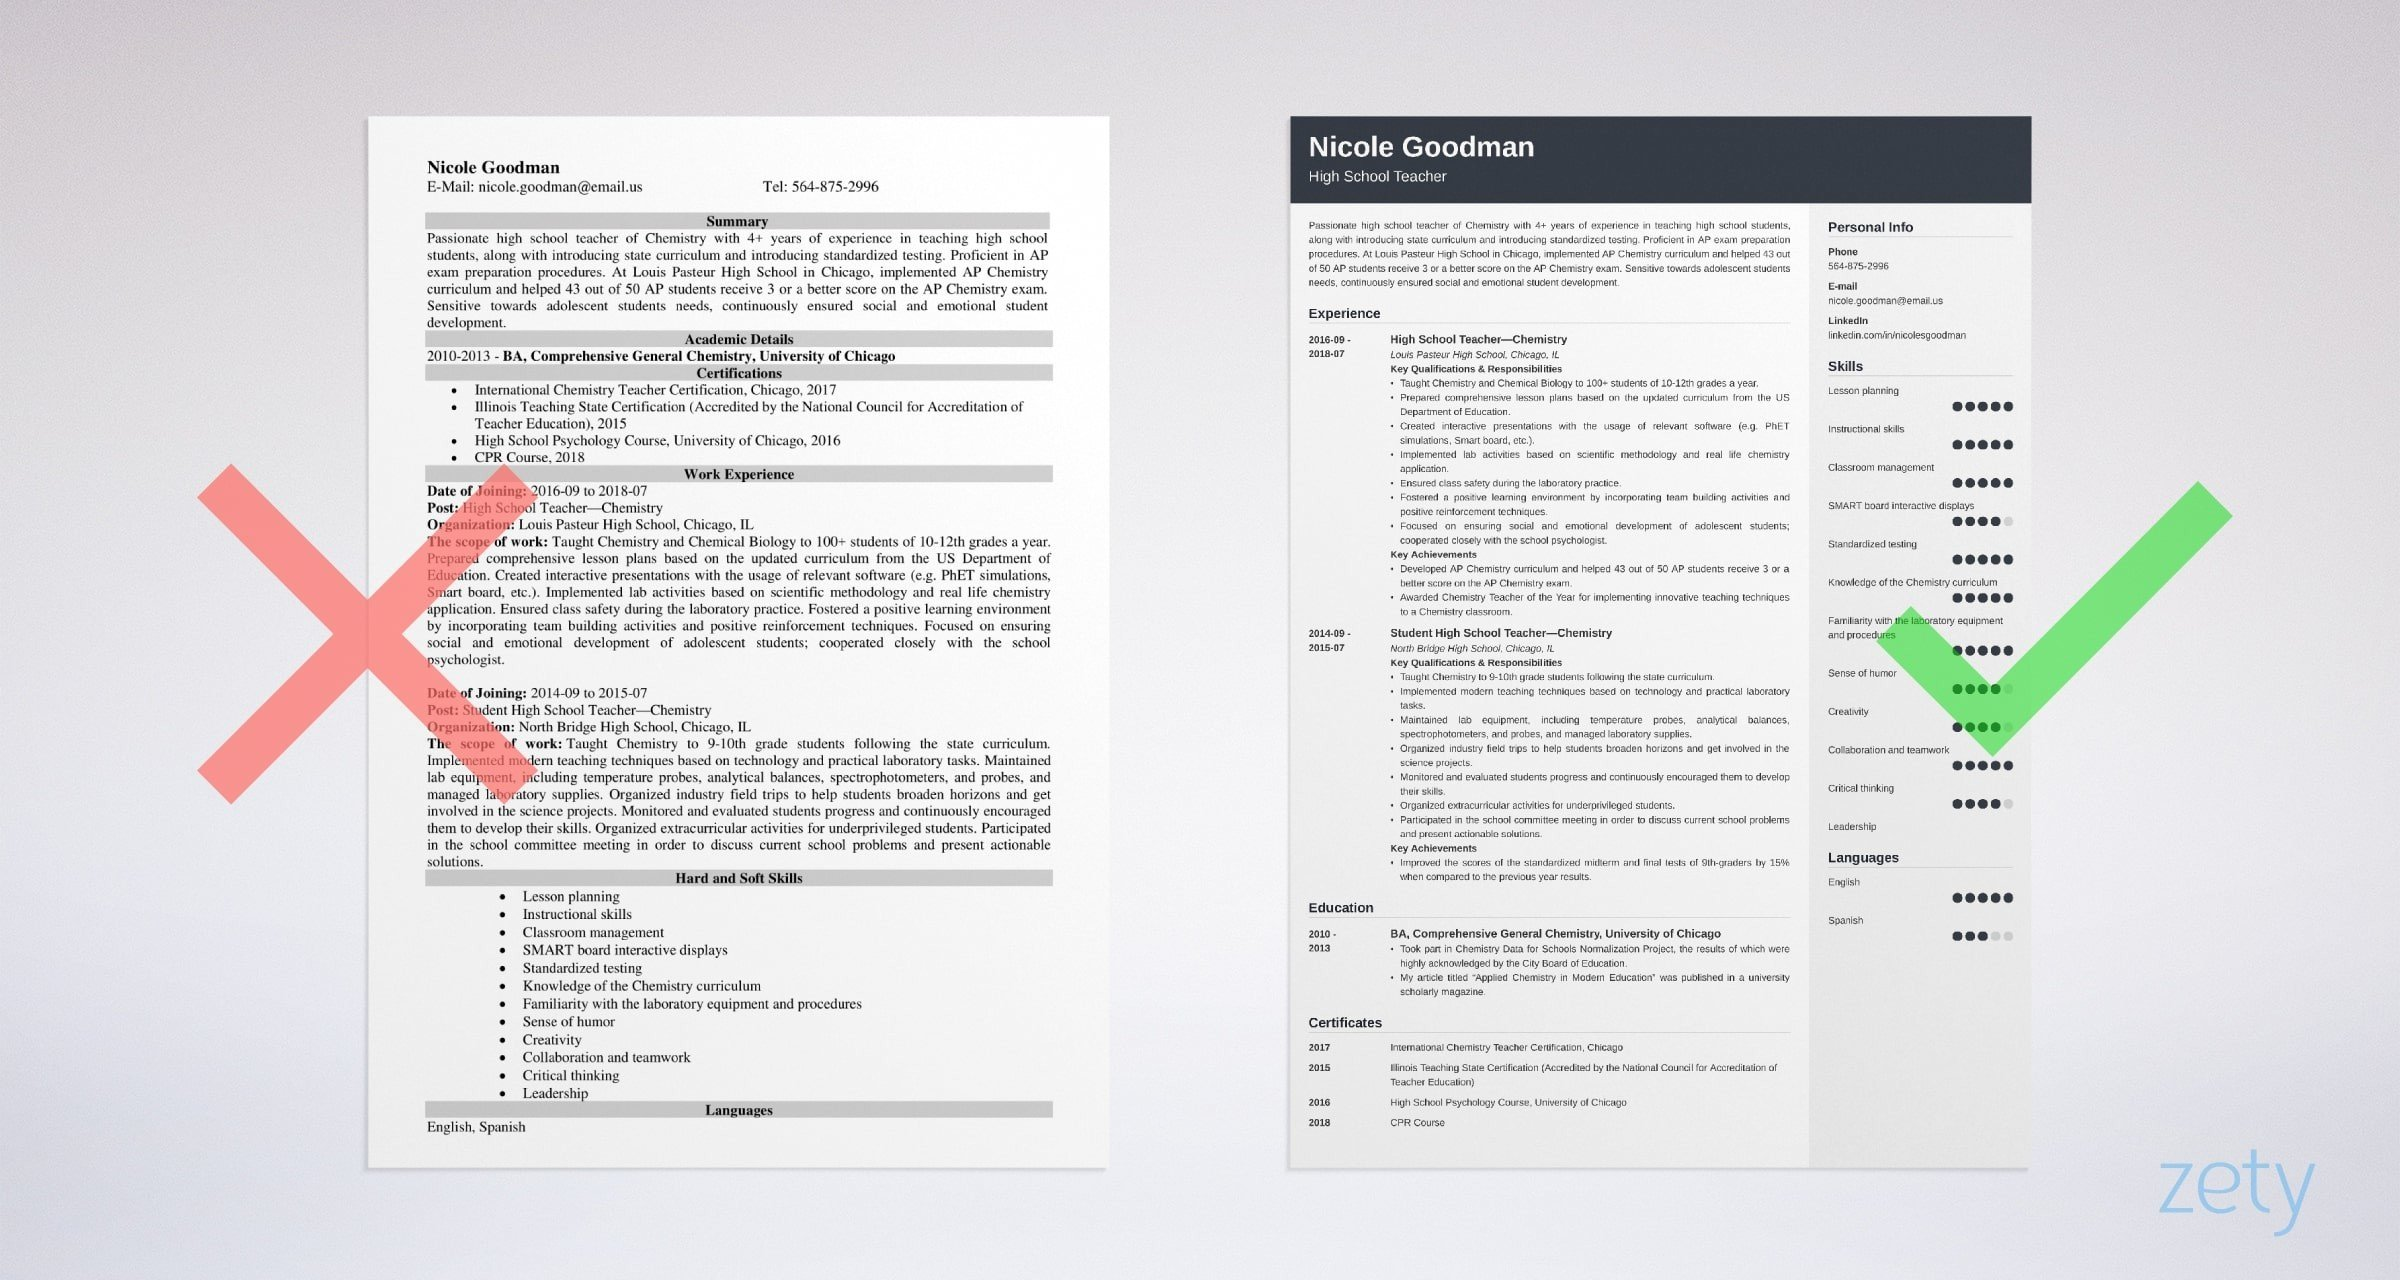 high school teacher resume examples template guide education format example tips for mass Resume Resume Education Format High School